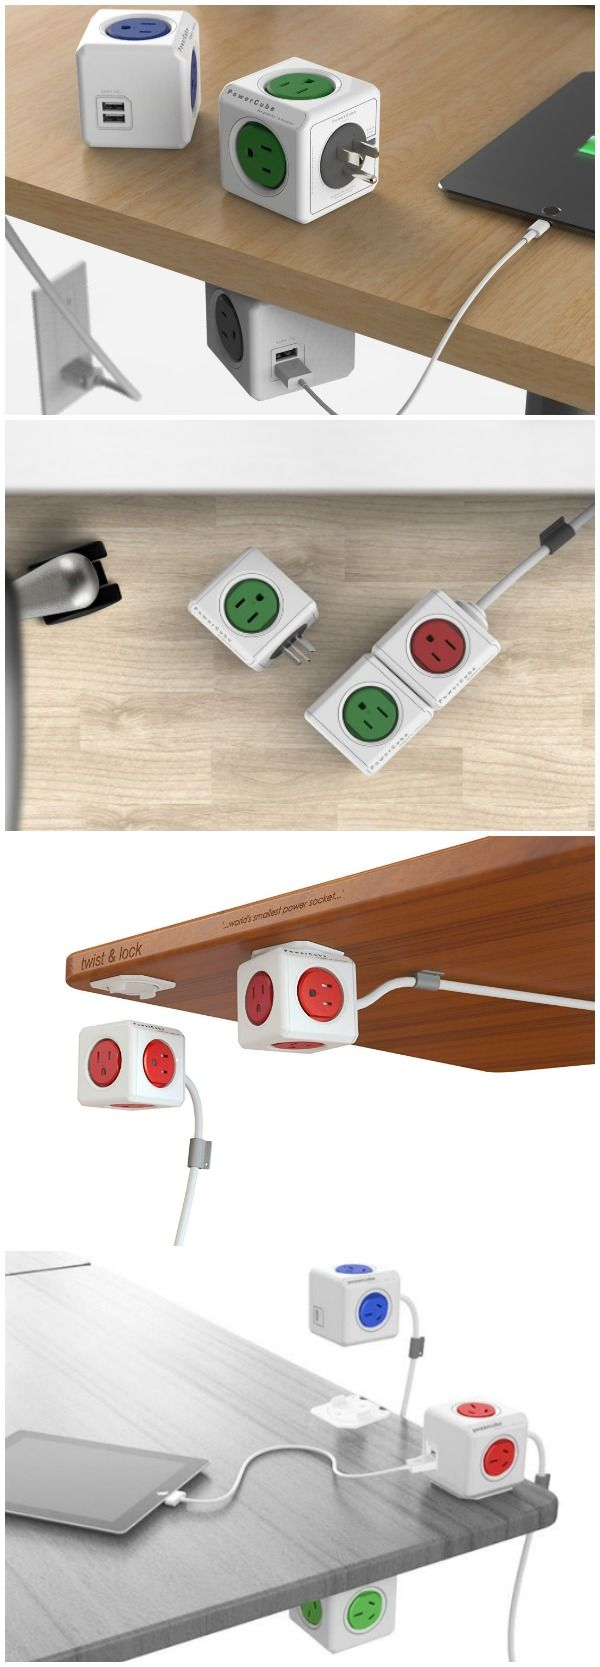 PowerCube - Power Strips Don't Have to Look Boring